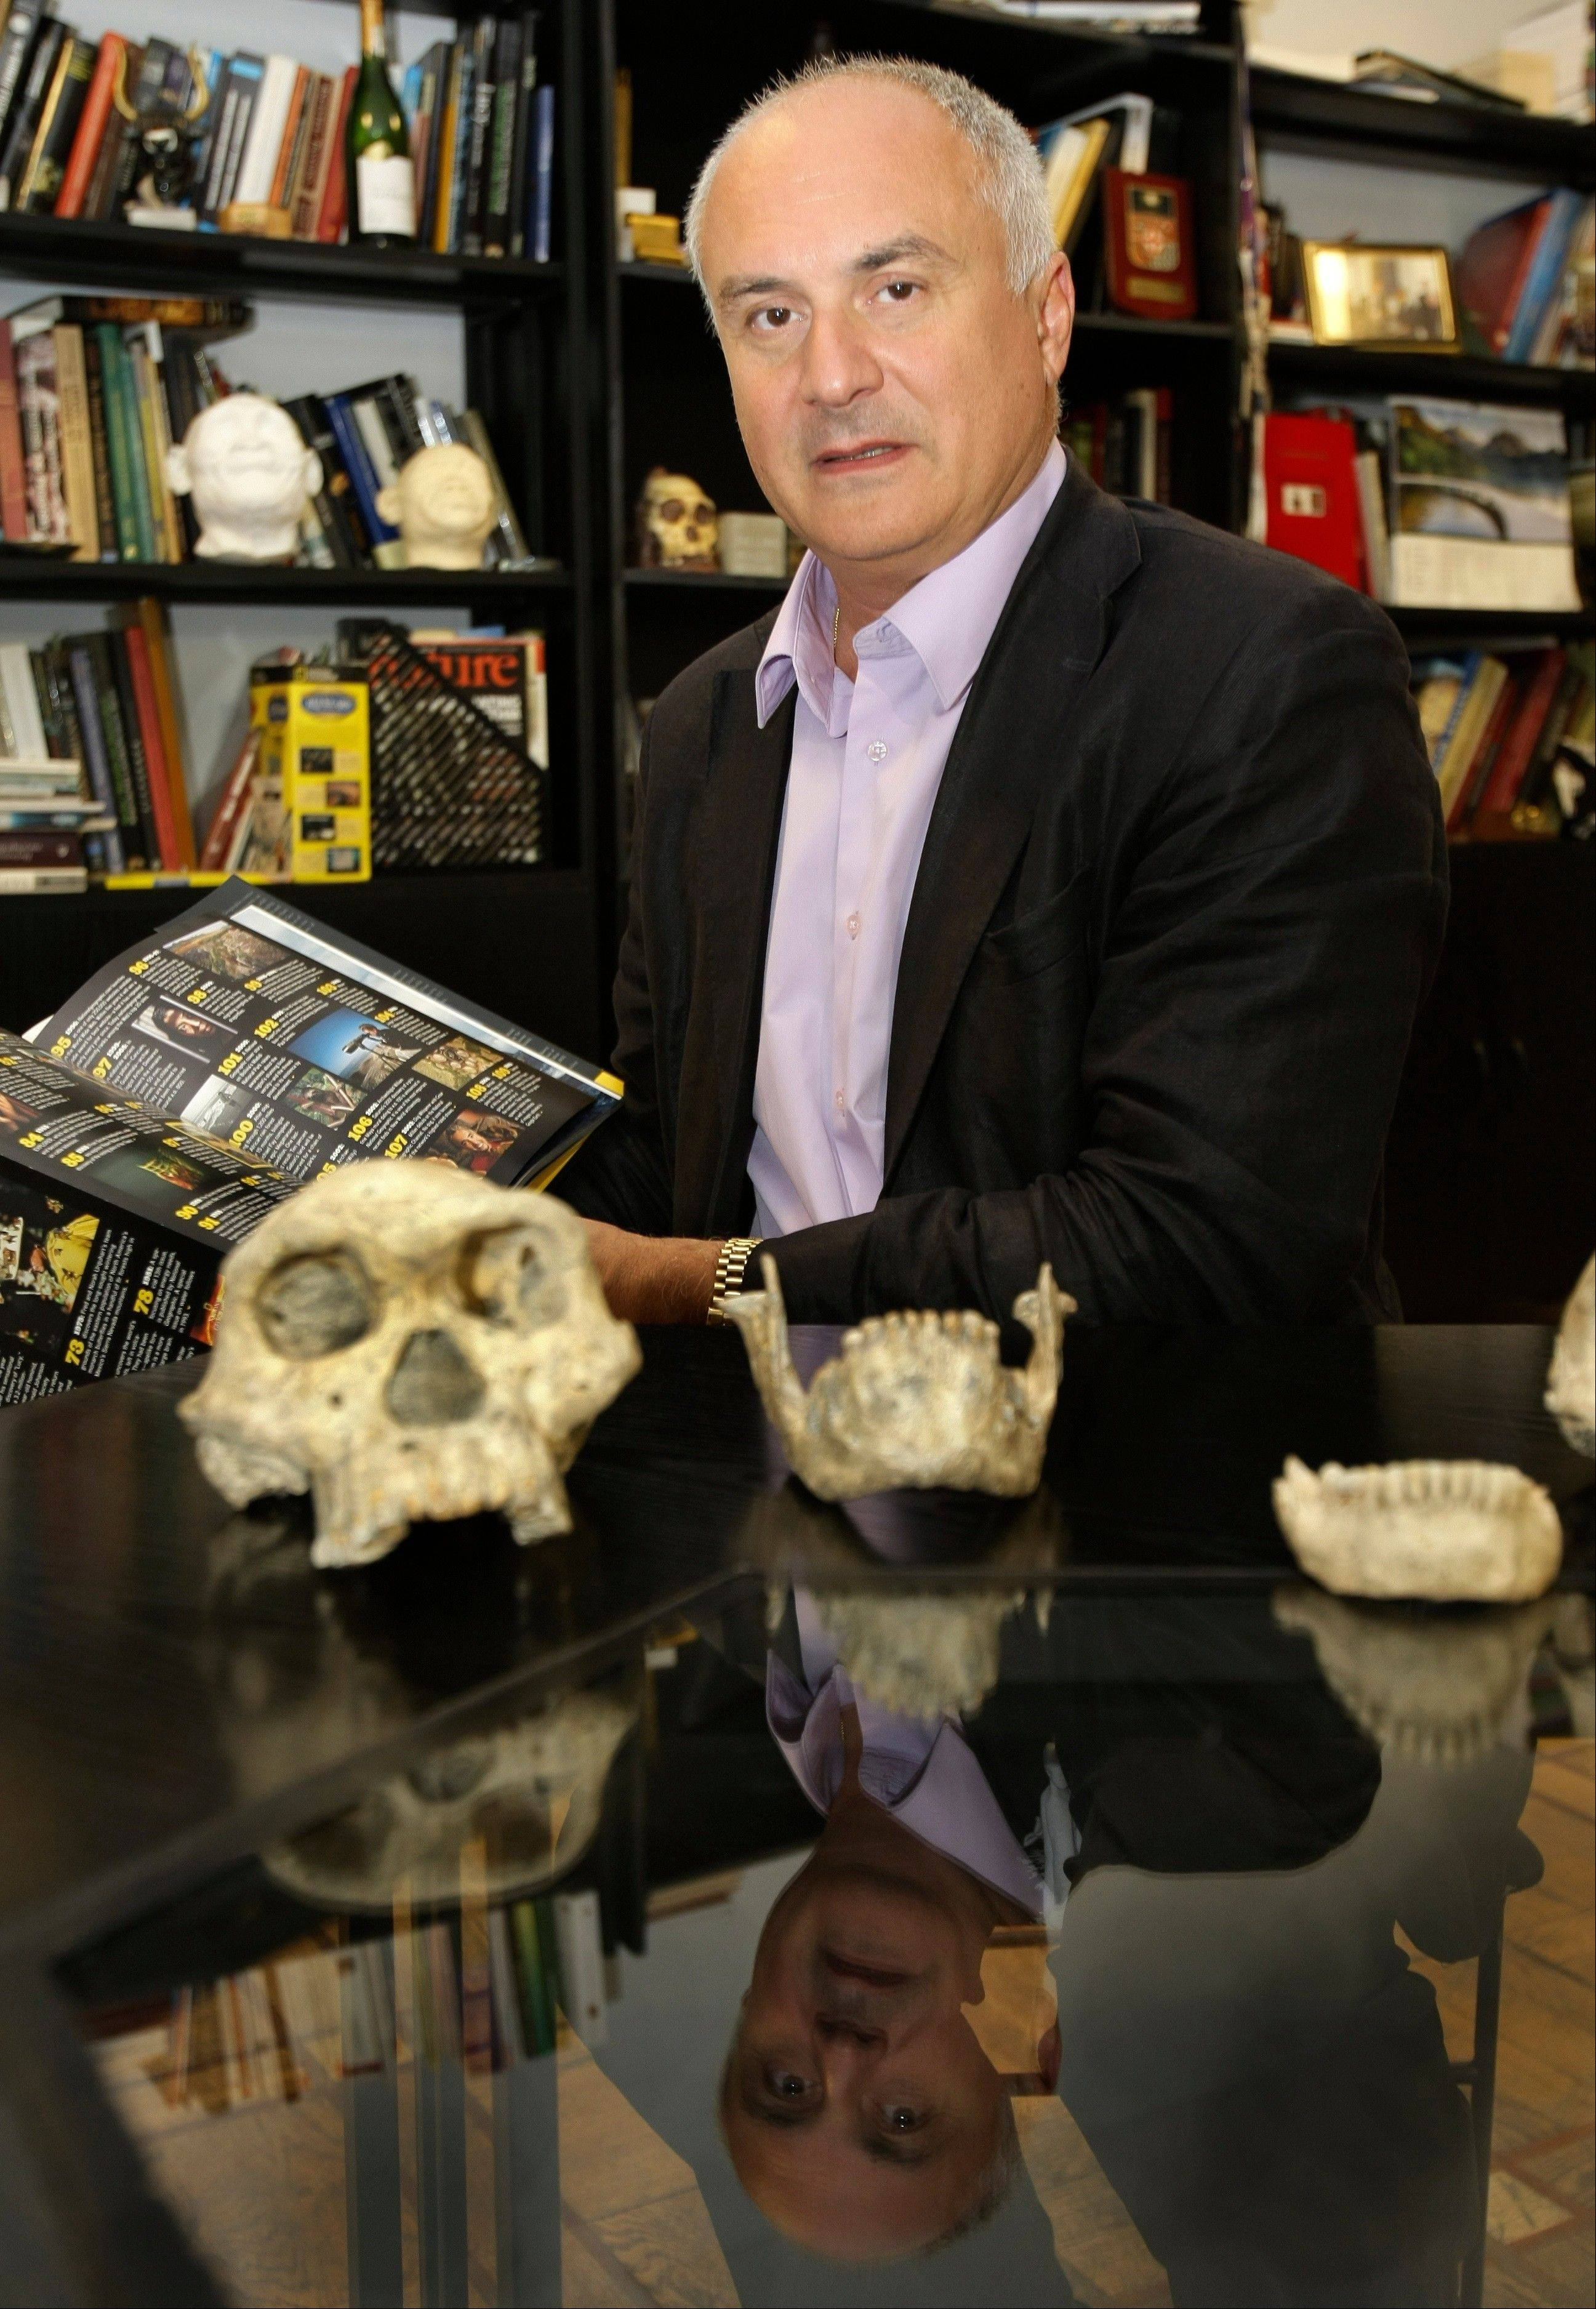 David Lordkipanidze, director of the Georgia National Museum, displays the ancient skull and jaws of a pre-human ancestor at the National Museum in Tbilisi, Georgia. The discovery indicates the human family tree may have fewer branches than originally thought.